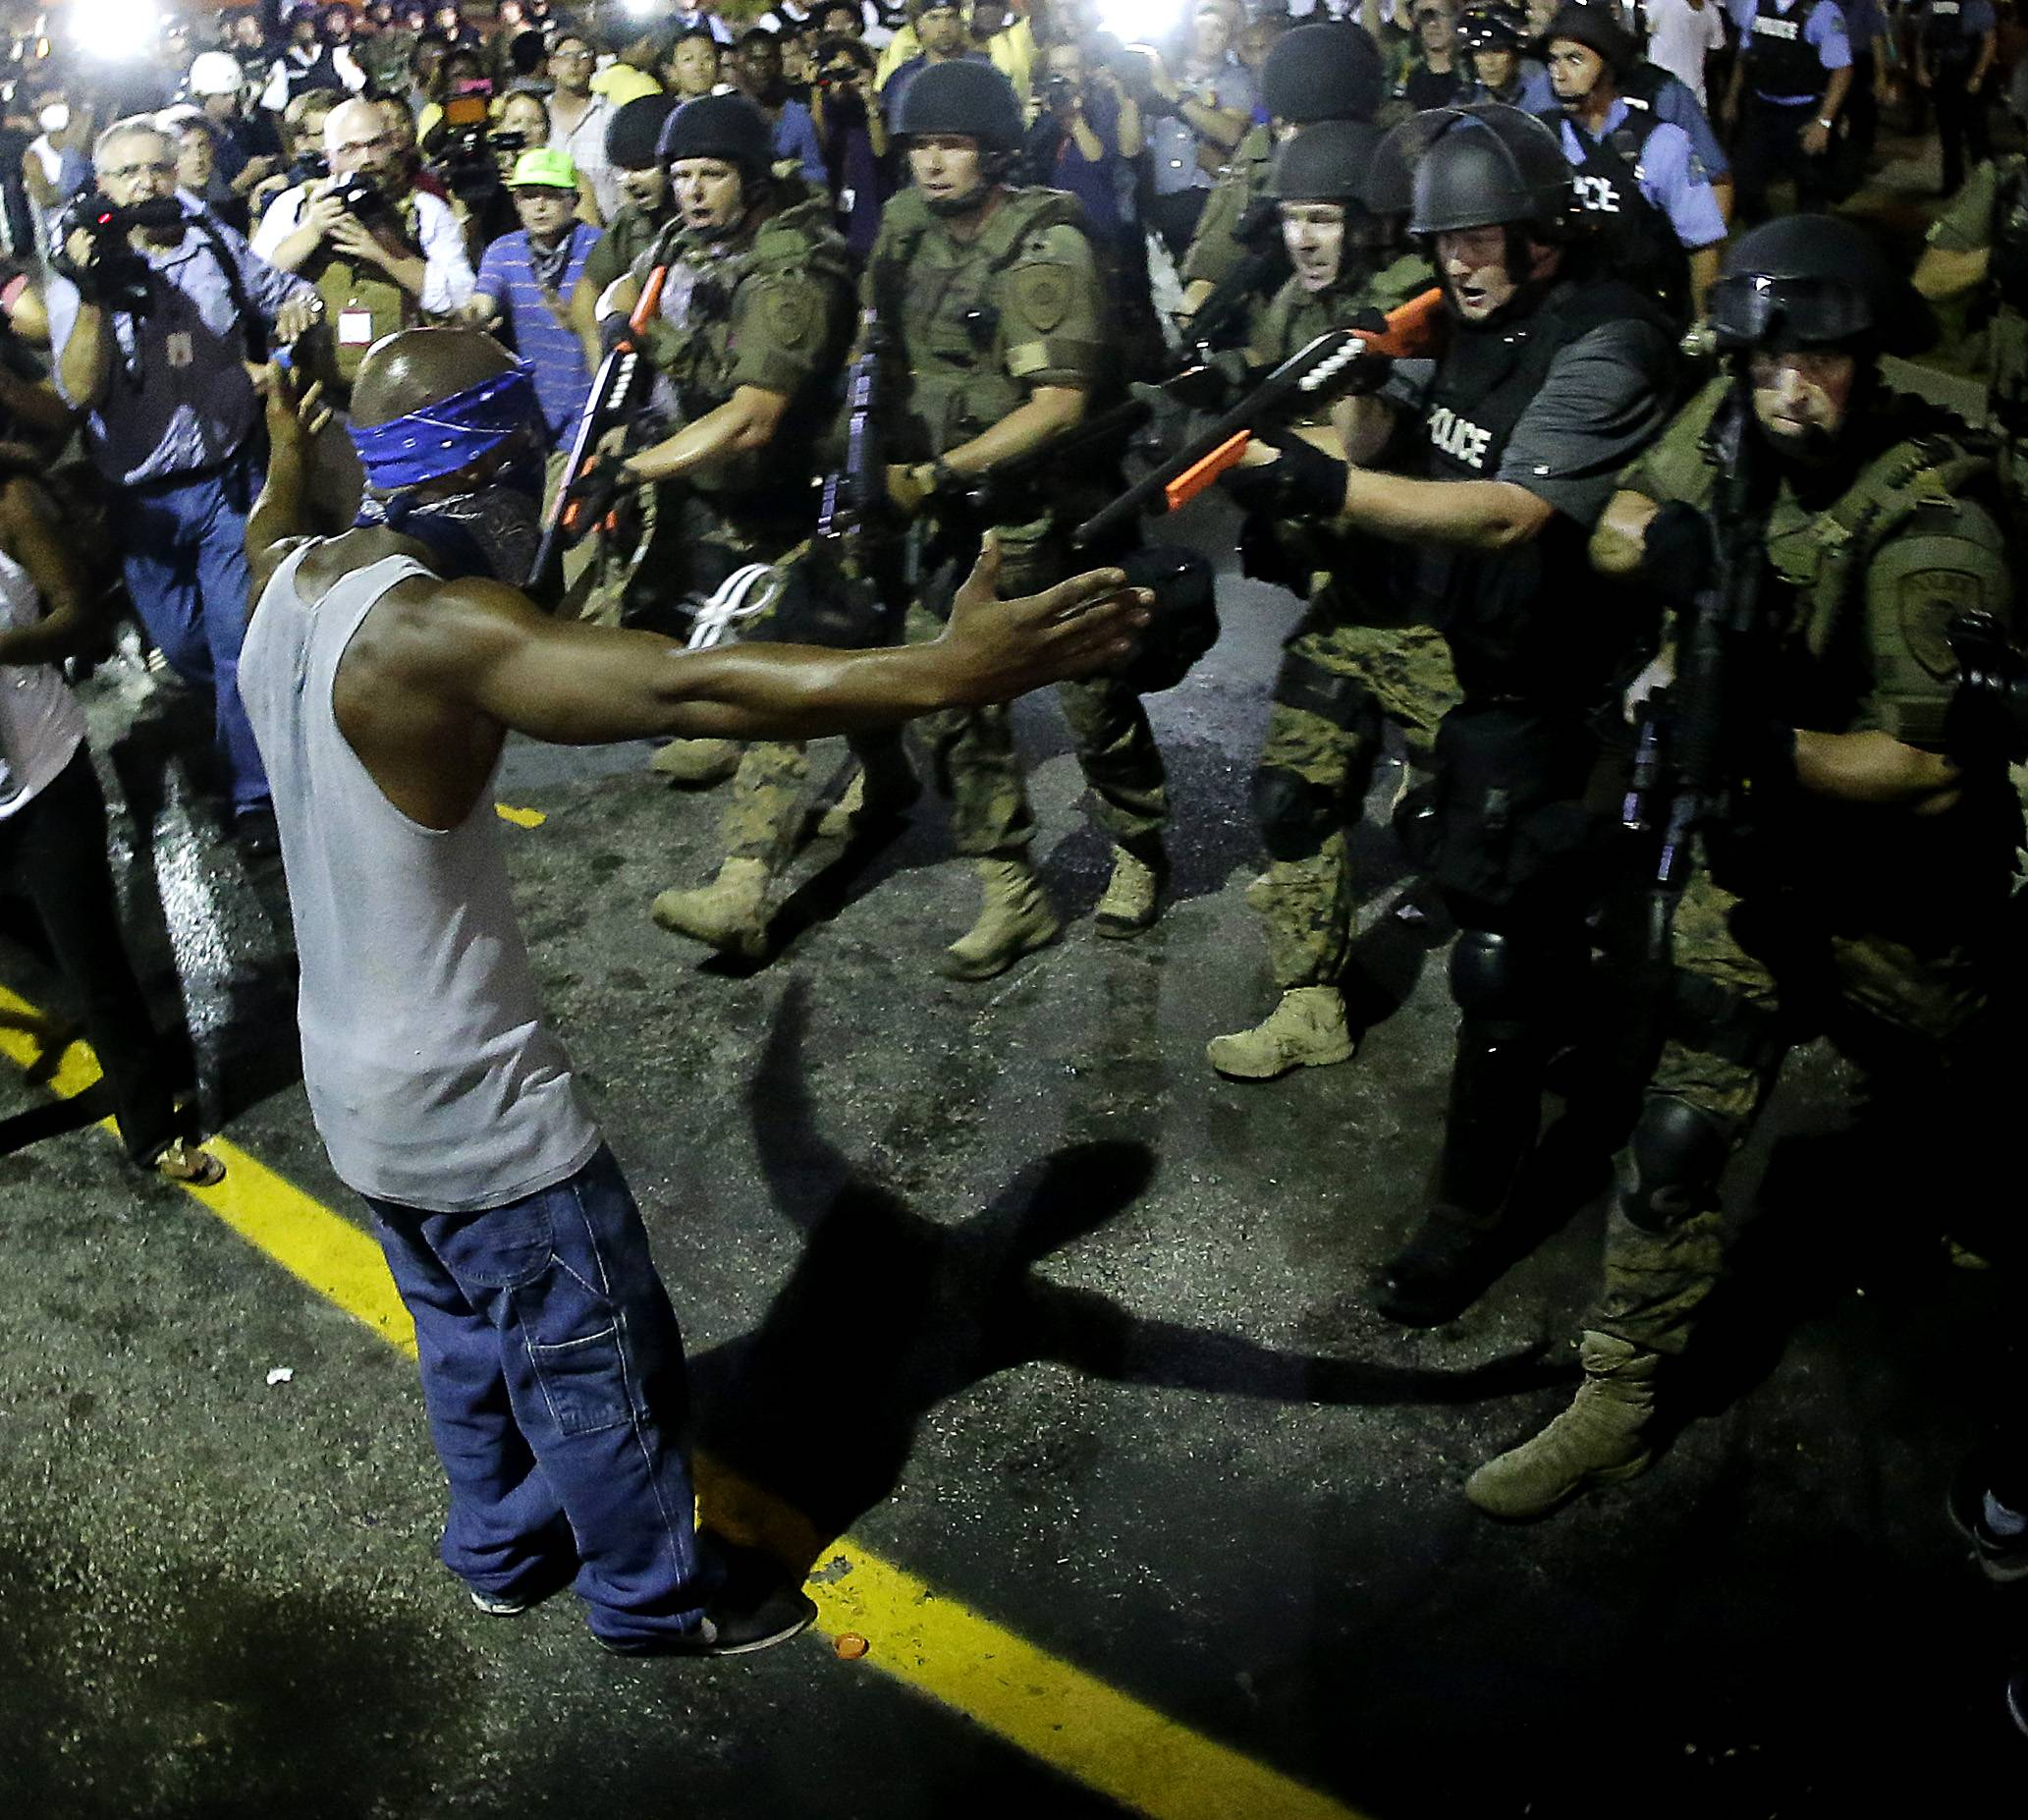 Police arrest a man as they disperse a protest in Ferguson, Mo., early Wednesday. On Saturday, a white police officer fatally shot Michael Brown, an unarmed black teenager, in the St. Louis suburb.